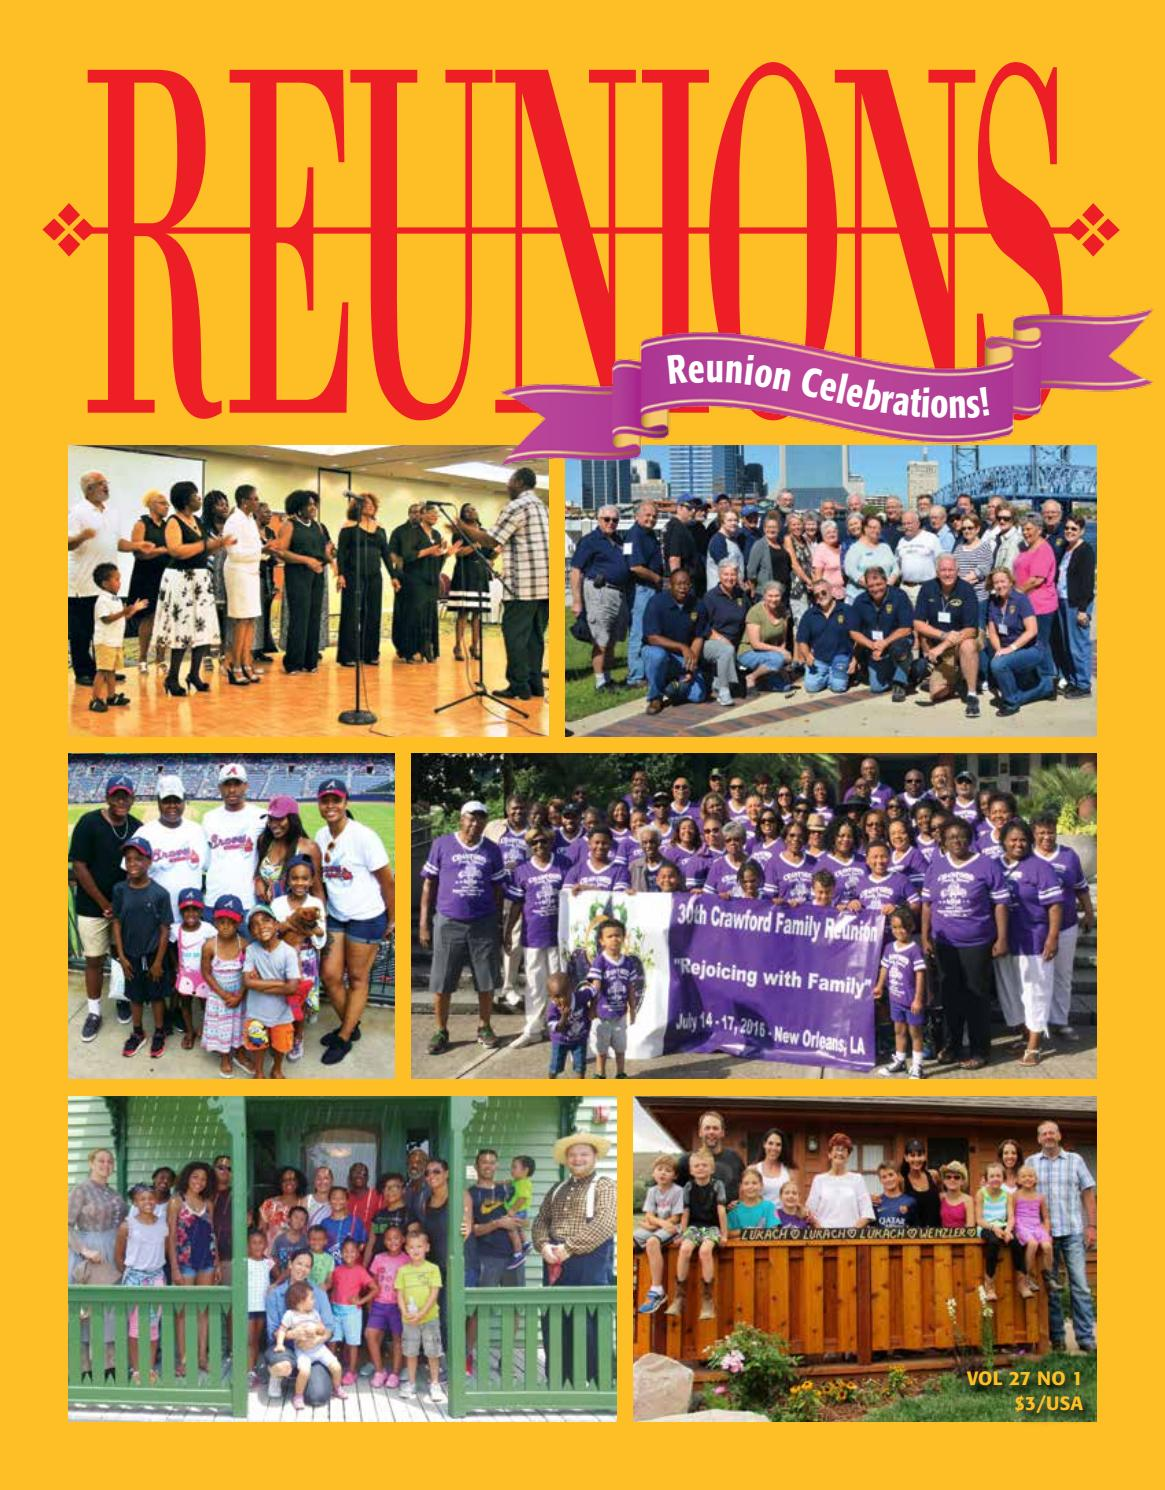 Reunions Magazine Volume 27 Number 1 February 2017 By Reunions